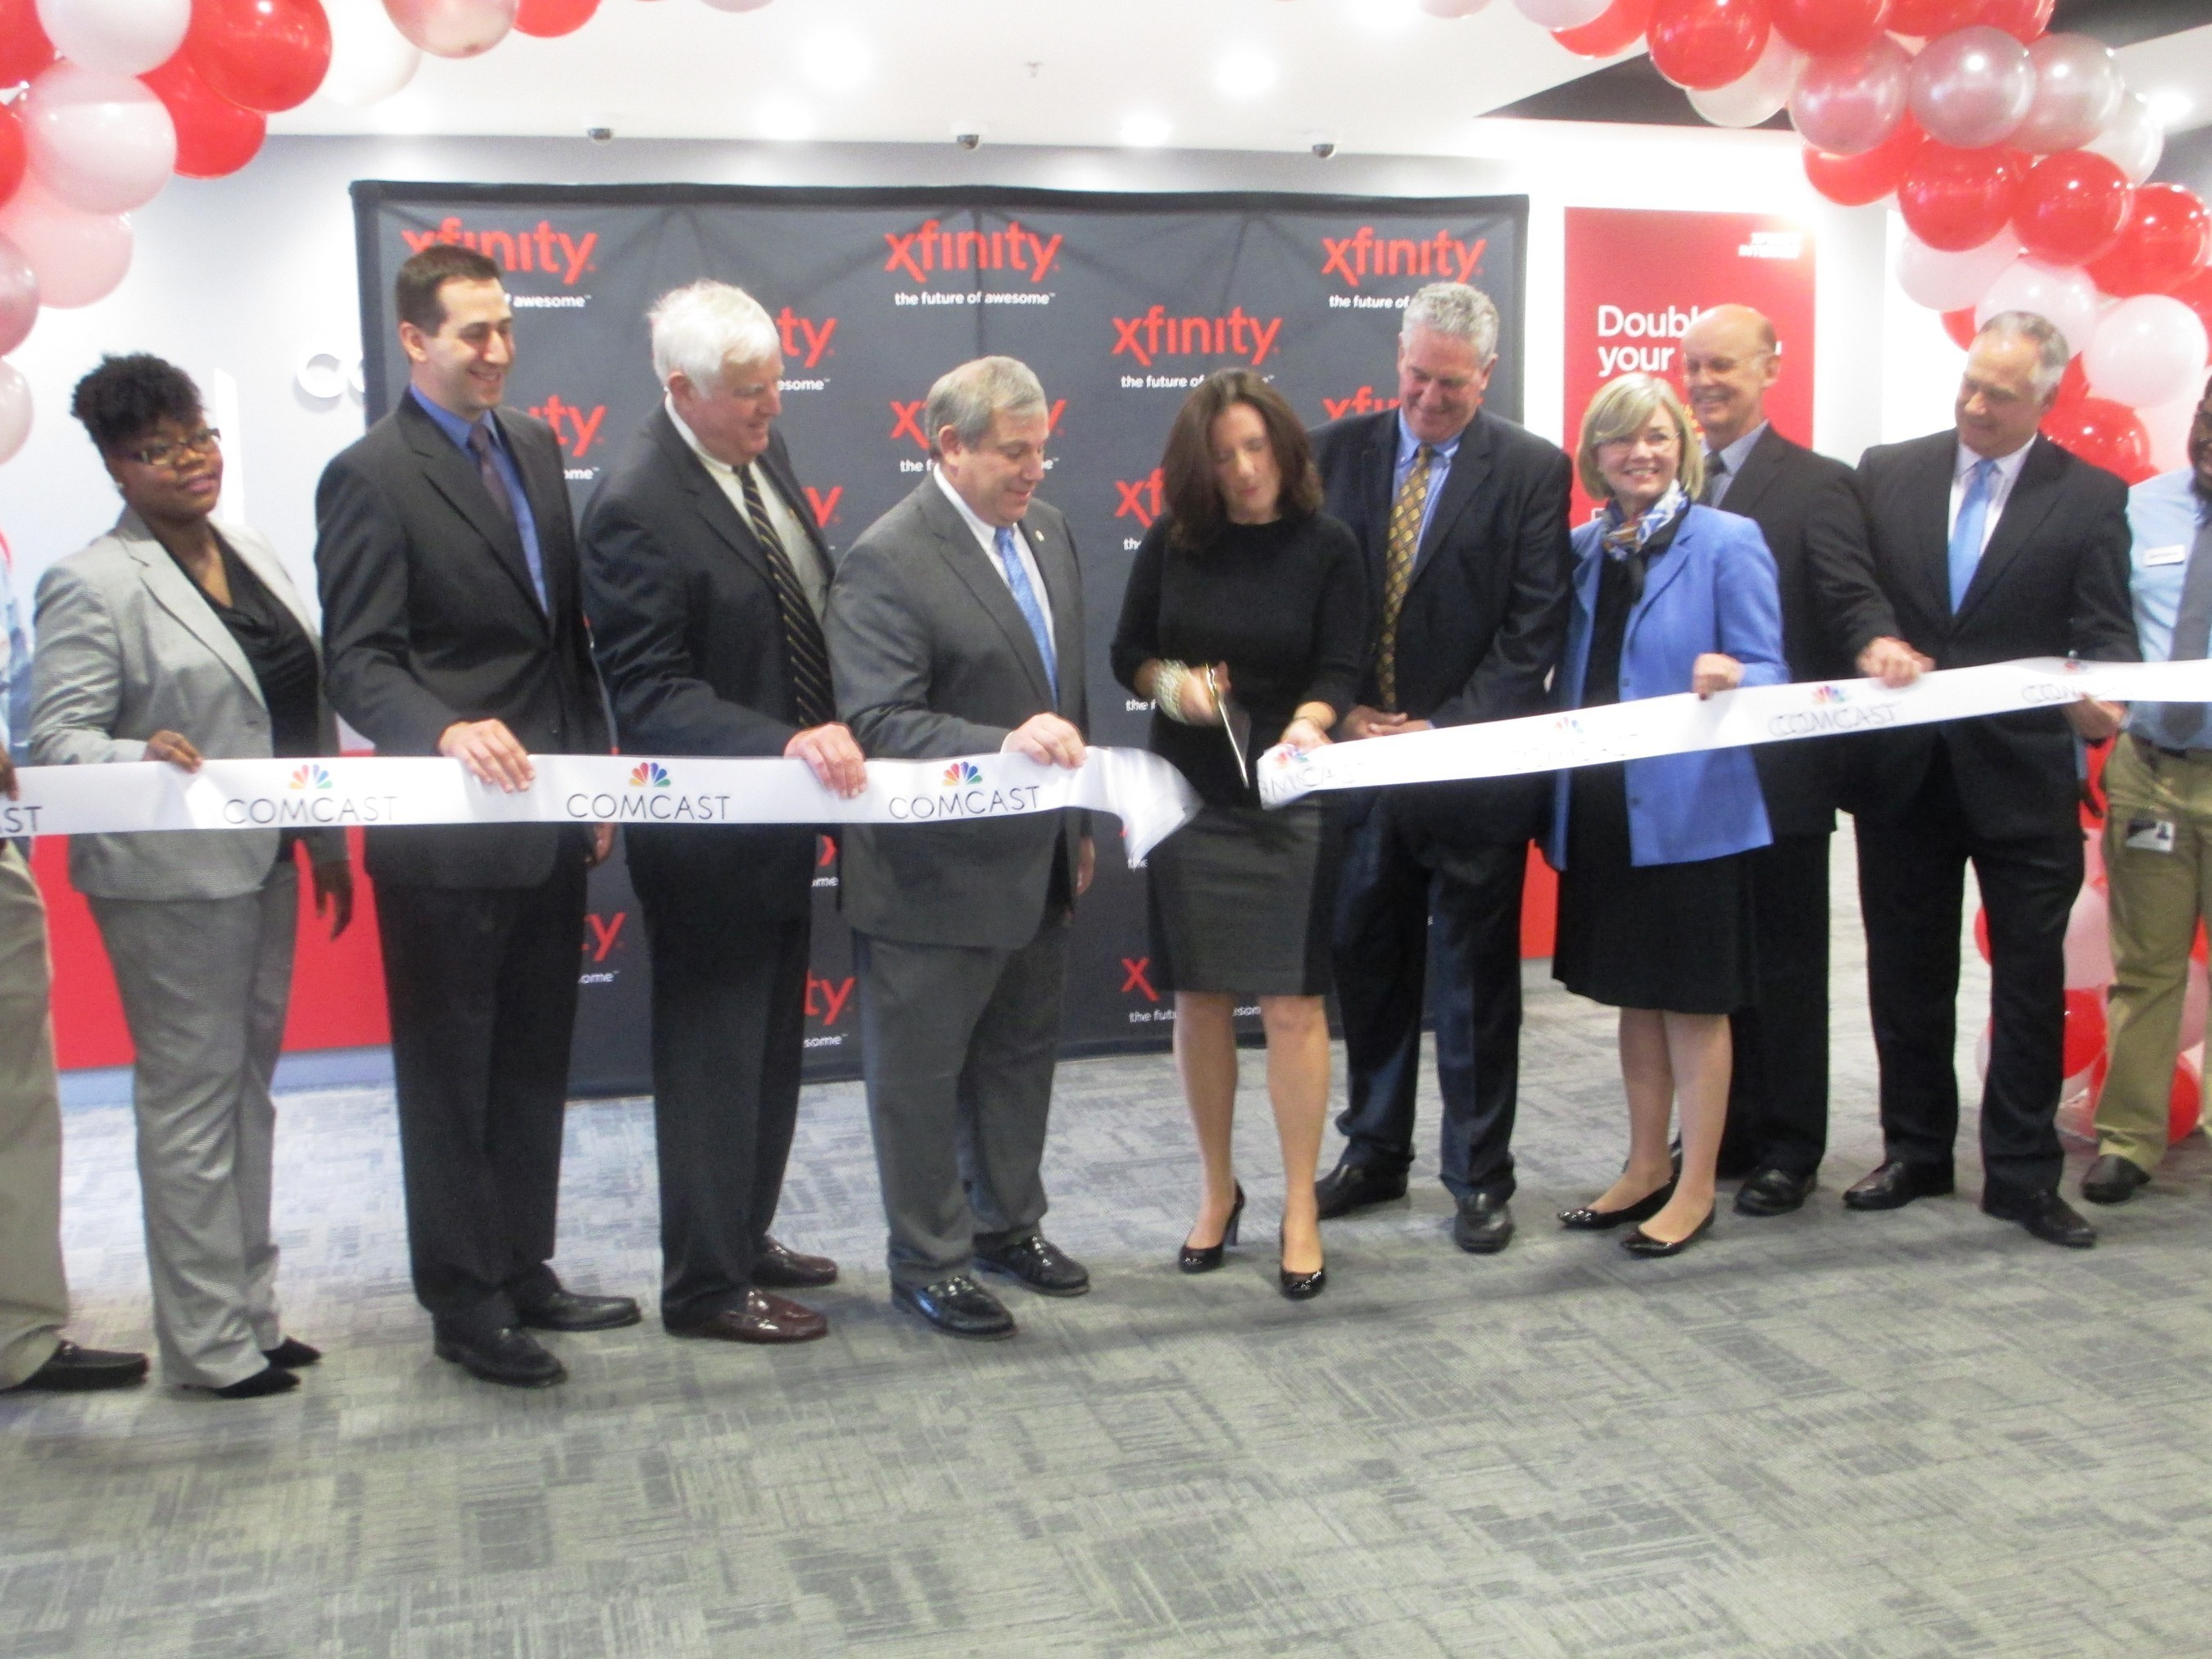 West Hartford and other local officials join Comcast for unveiling of new Xfinity customer service center in ...